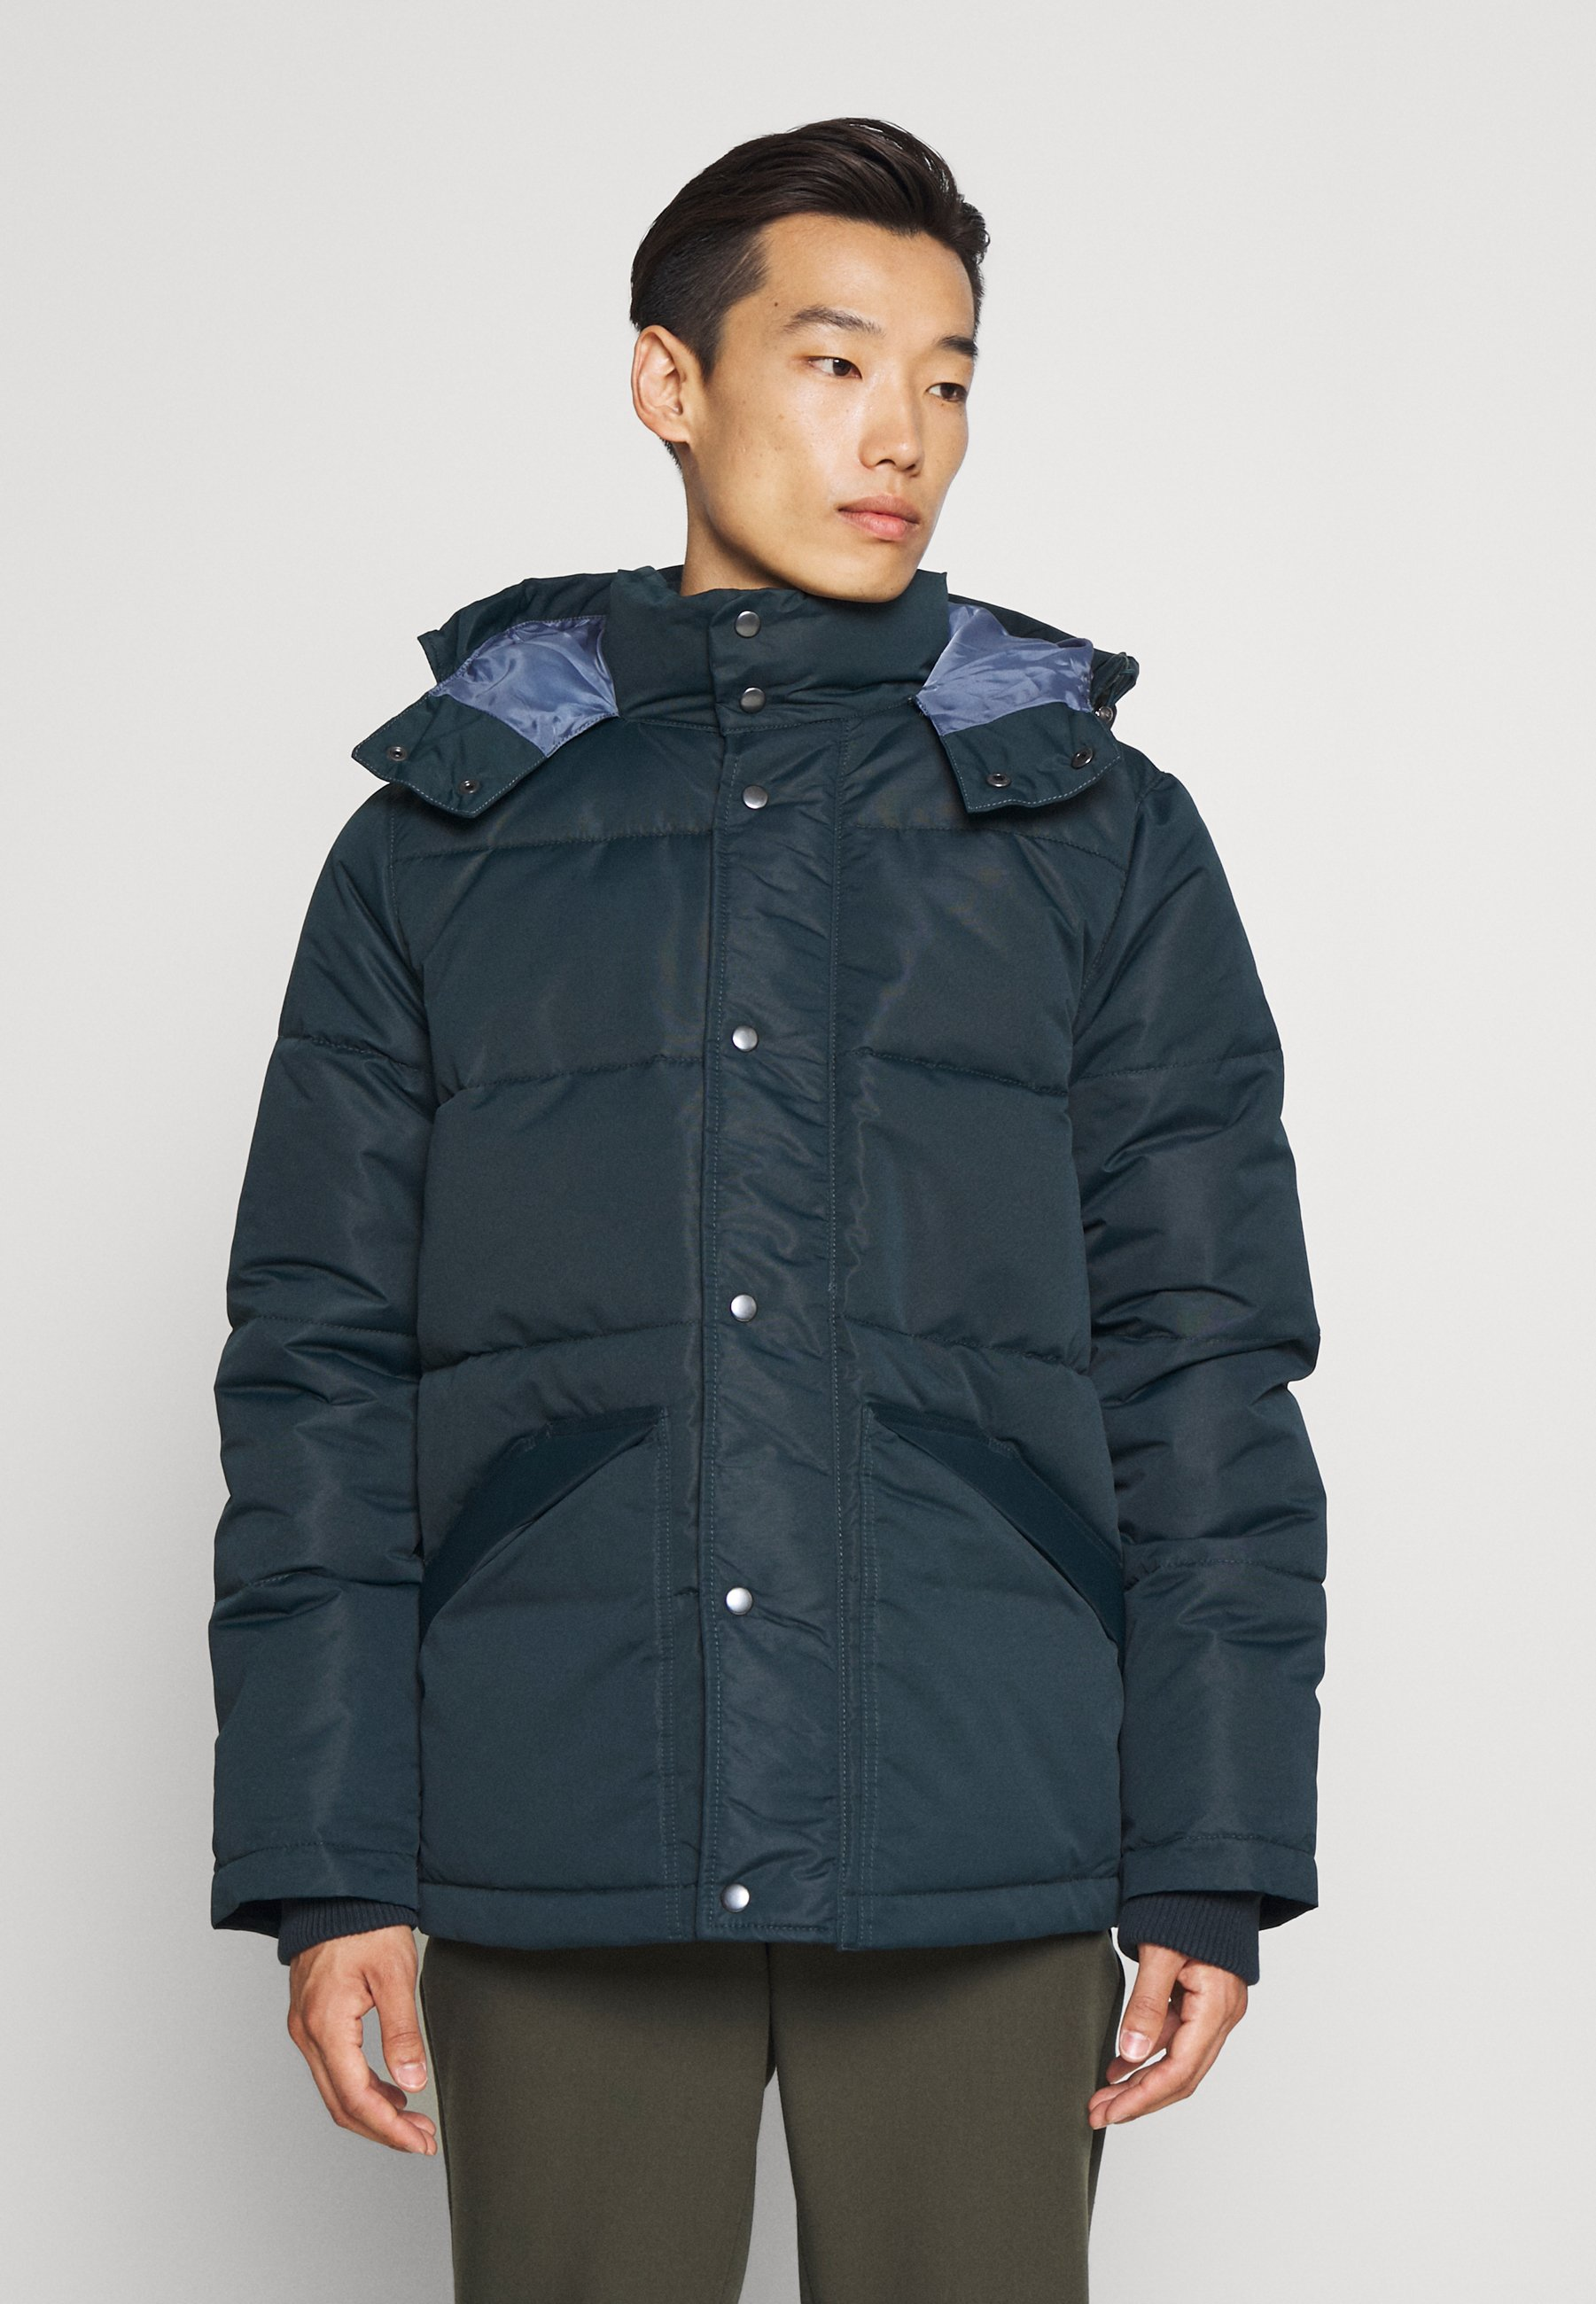 Uomo HOODED HEAVYWEIGHT PUFFER - Giacca invernale